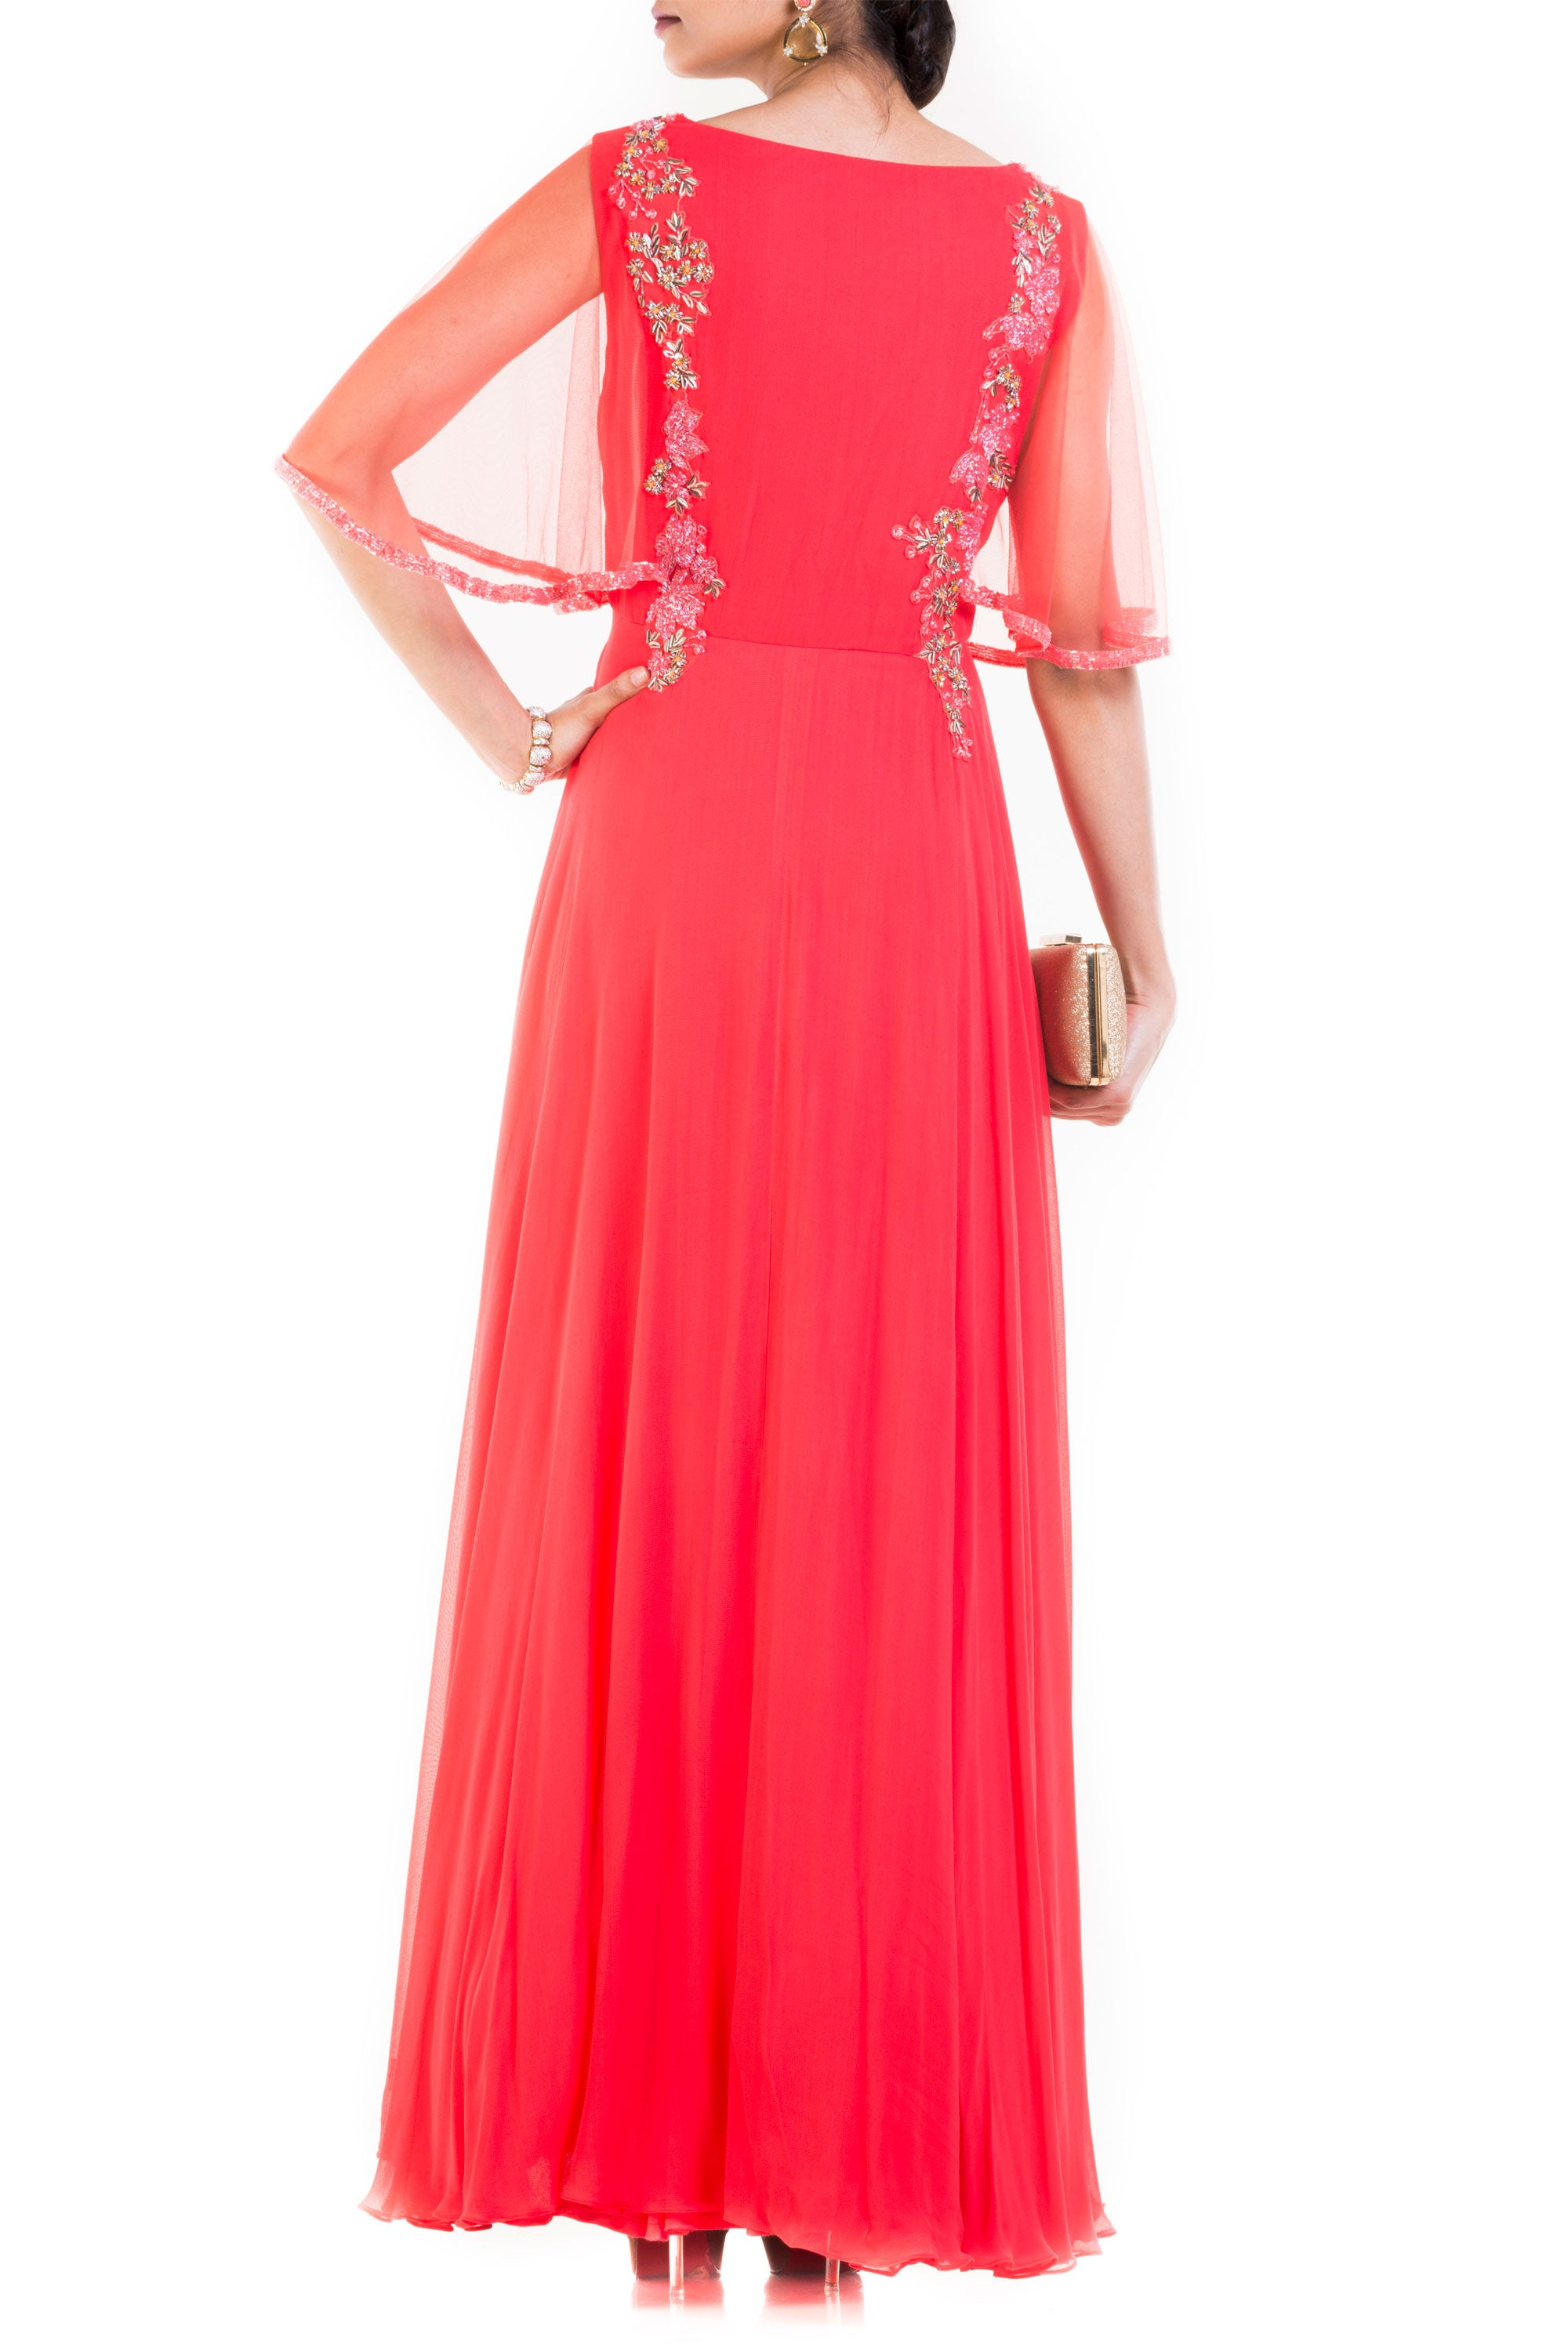 Coral Long Dress With Embroidered Half Cape Back